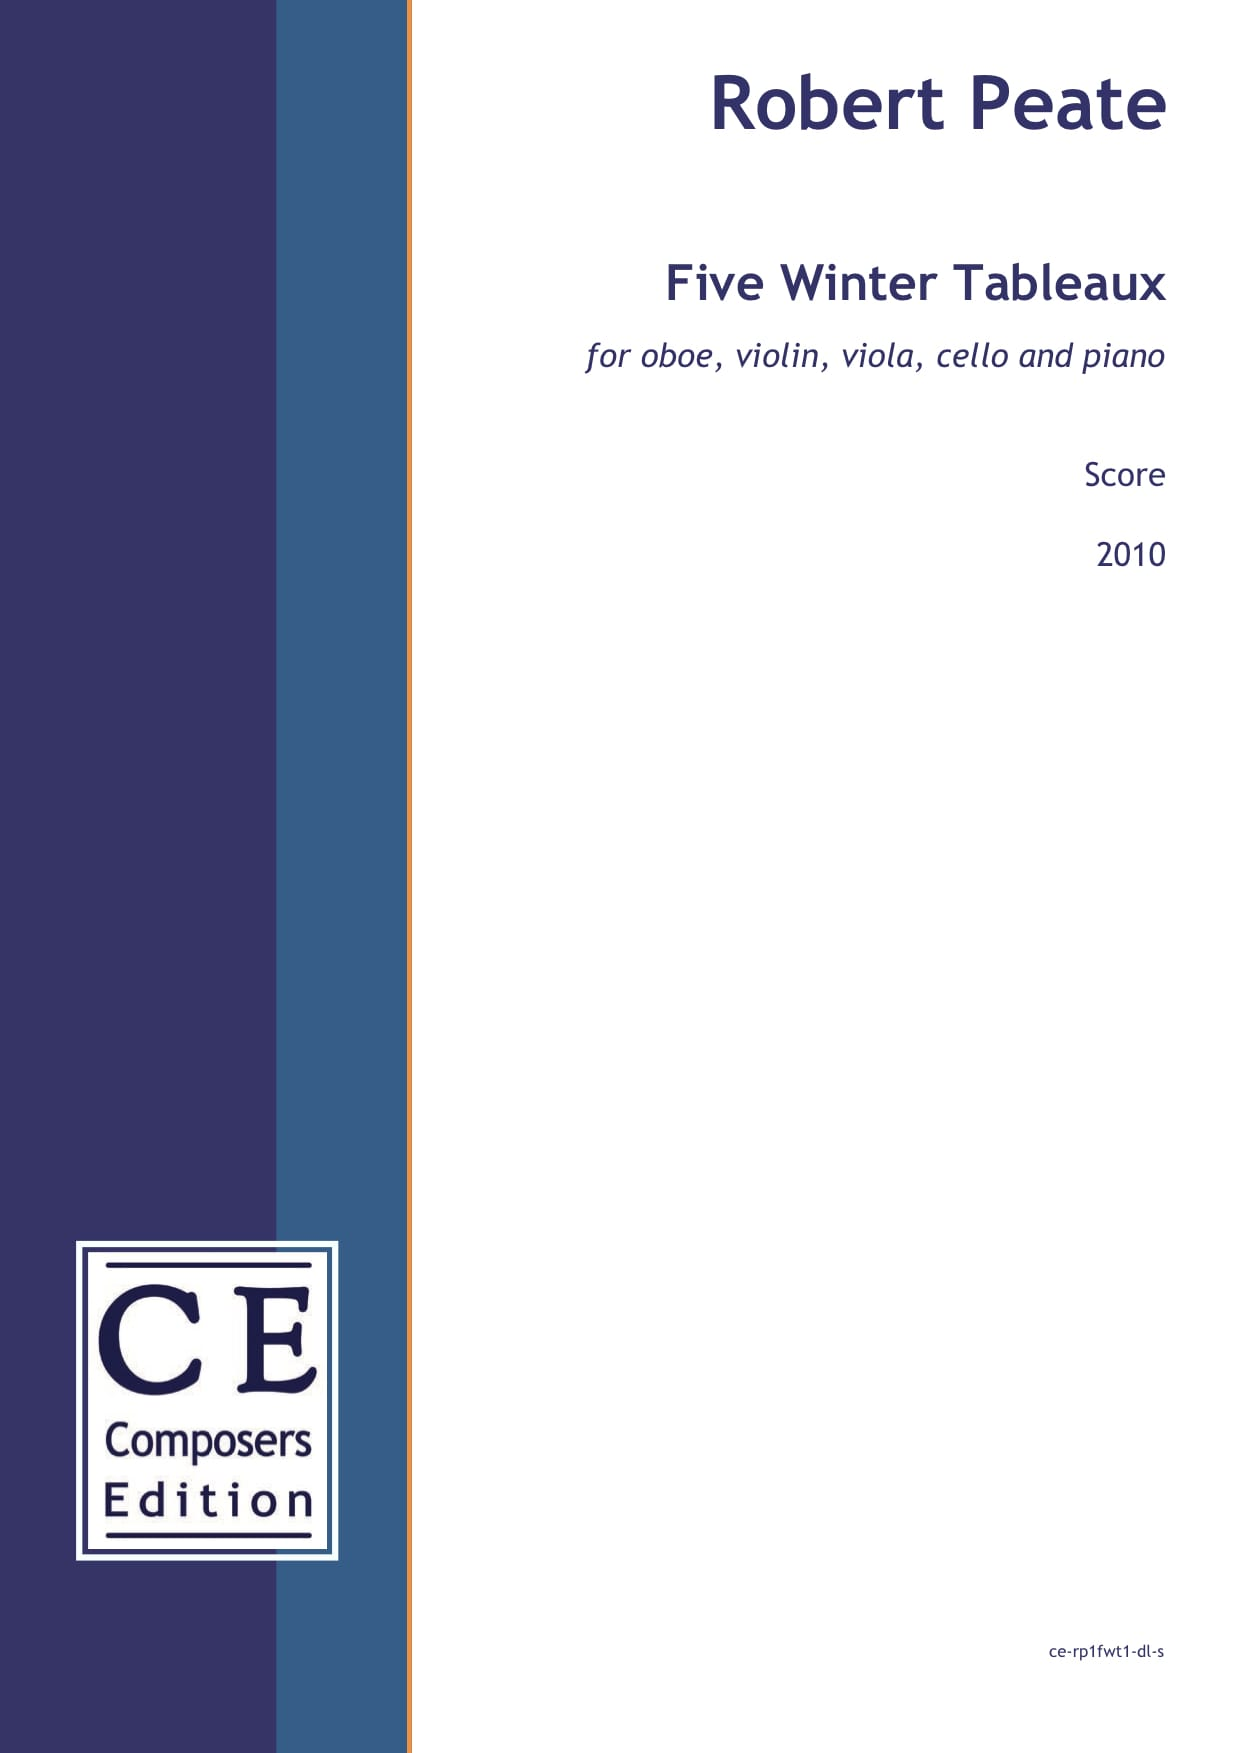 Robert Peate: Five Winter Tableaux for oboe, violin, viola, cello and piano